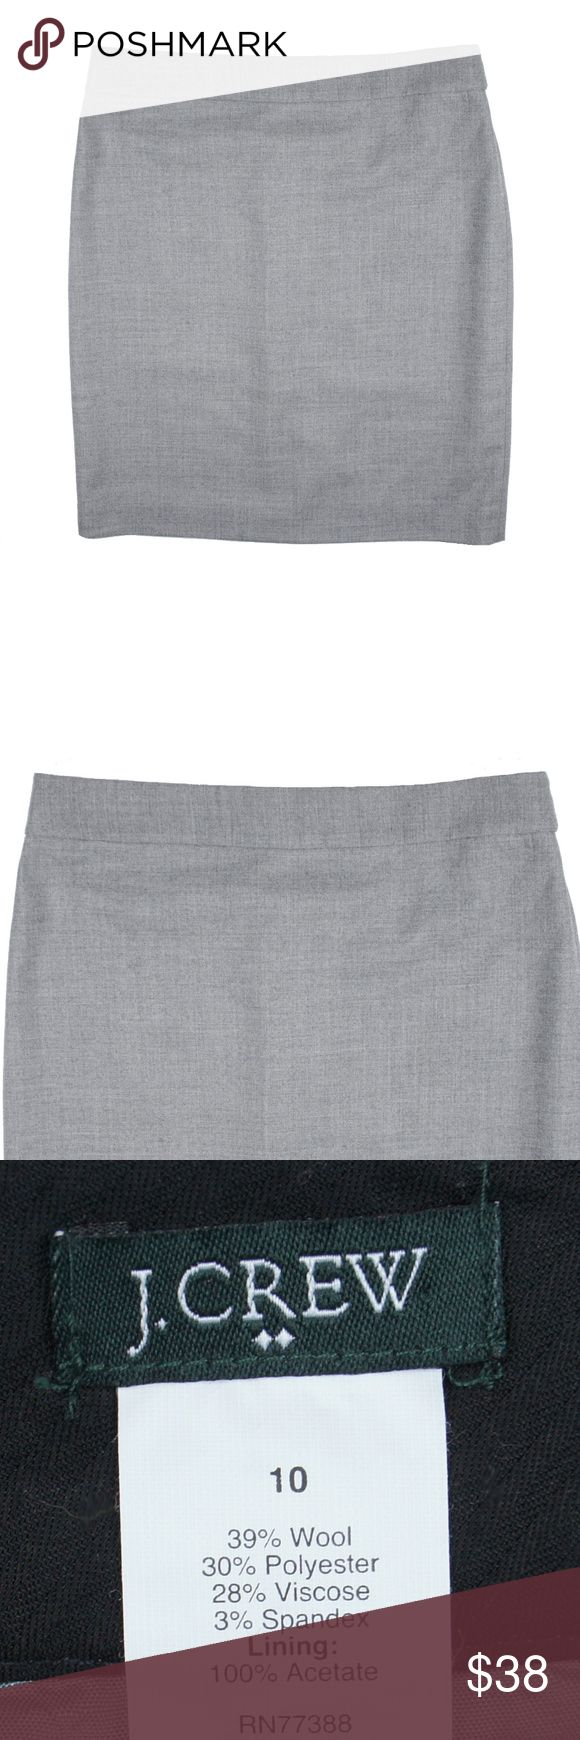 """JCREW Gray Pencil Skirt in Wool Flannel Size -  10  This gray pencil skirt in wool flannel is in excellent condition. It features:      Wool/poly/viscose with a hint of stretch.     Sits at waist.     21 1/2"""" long.     Back zip.     Back welt pockets.     Back vent.     Lined.     Dry clean.     Import.  Measures:      Waist: 33""""     Hips: 41""""     Total Length: 21.5"""" J. Crew Skirts Pencil"""